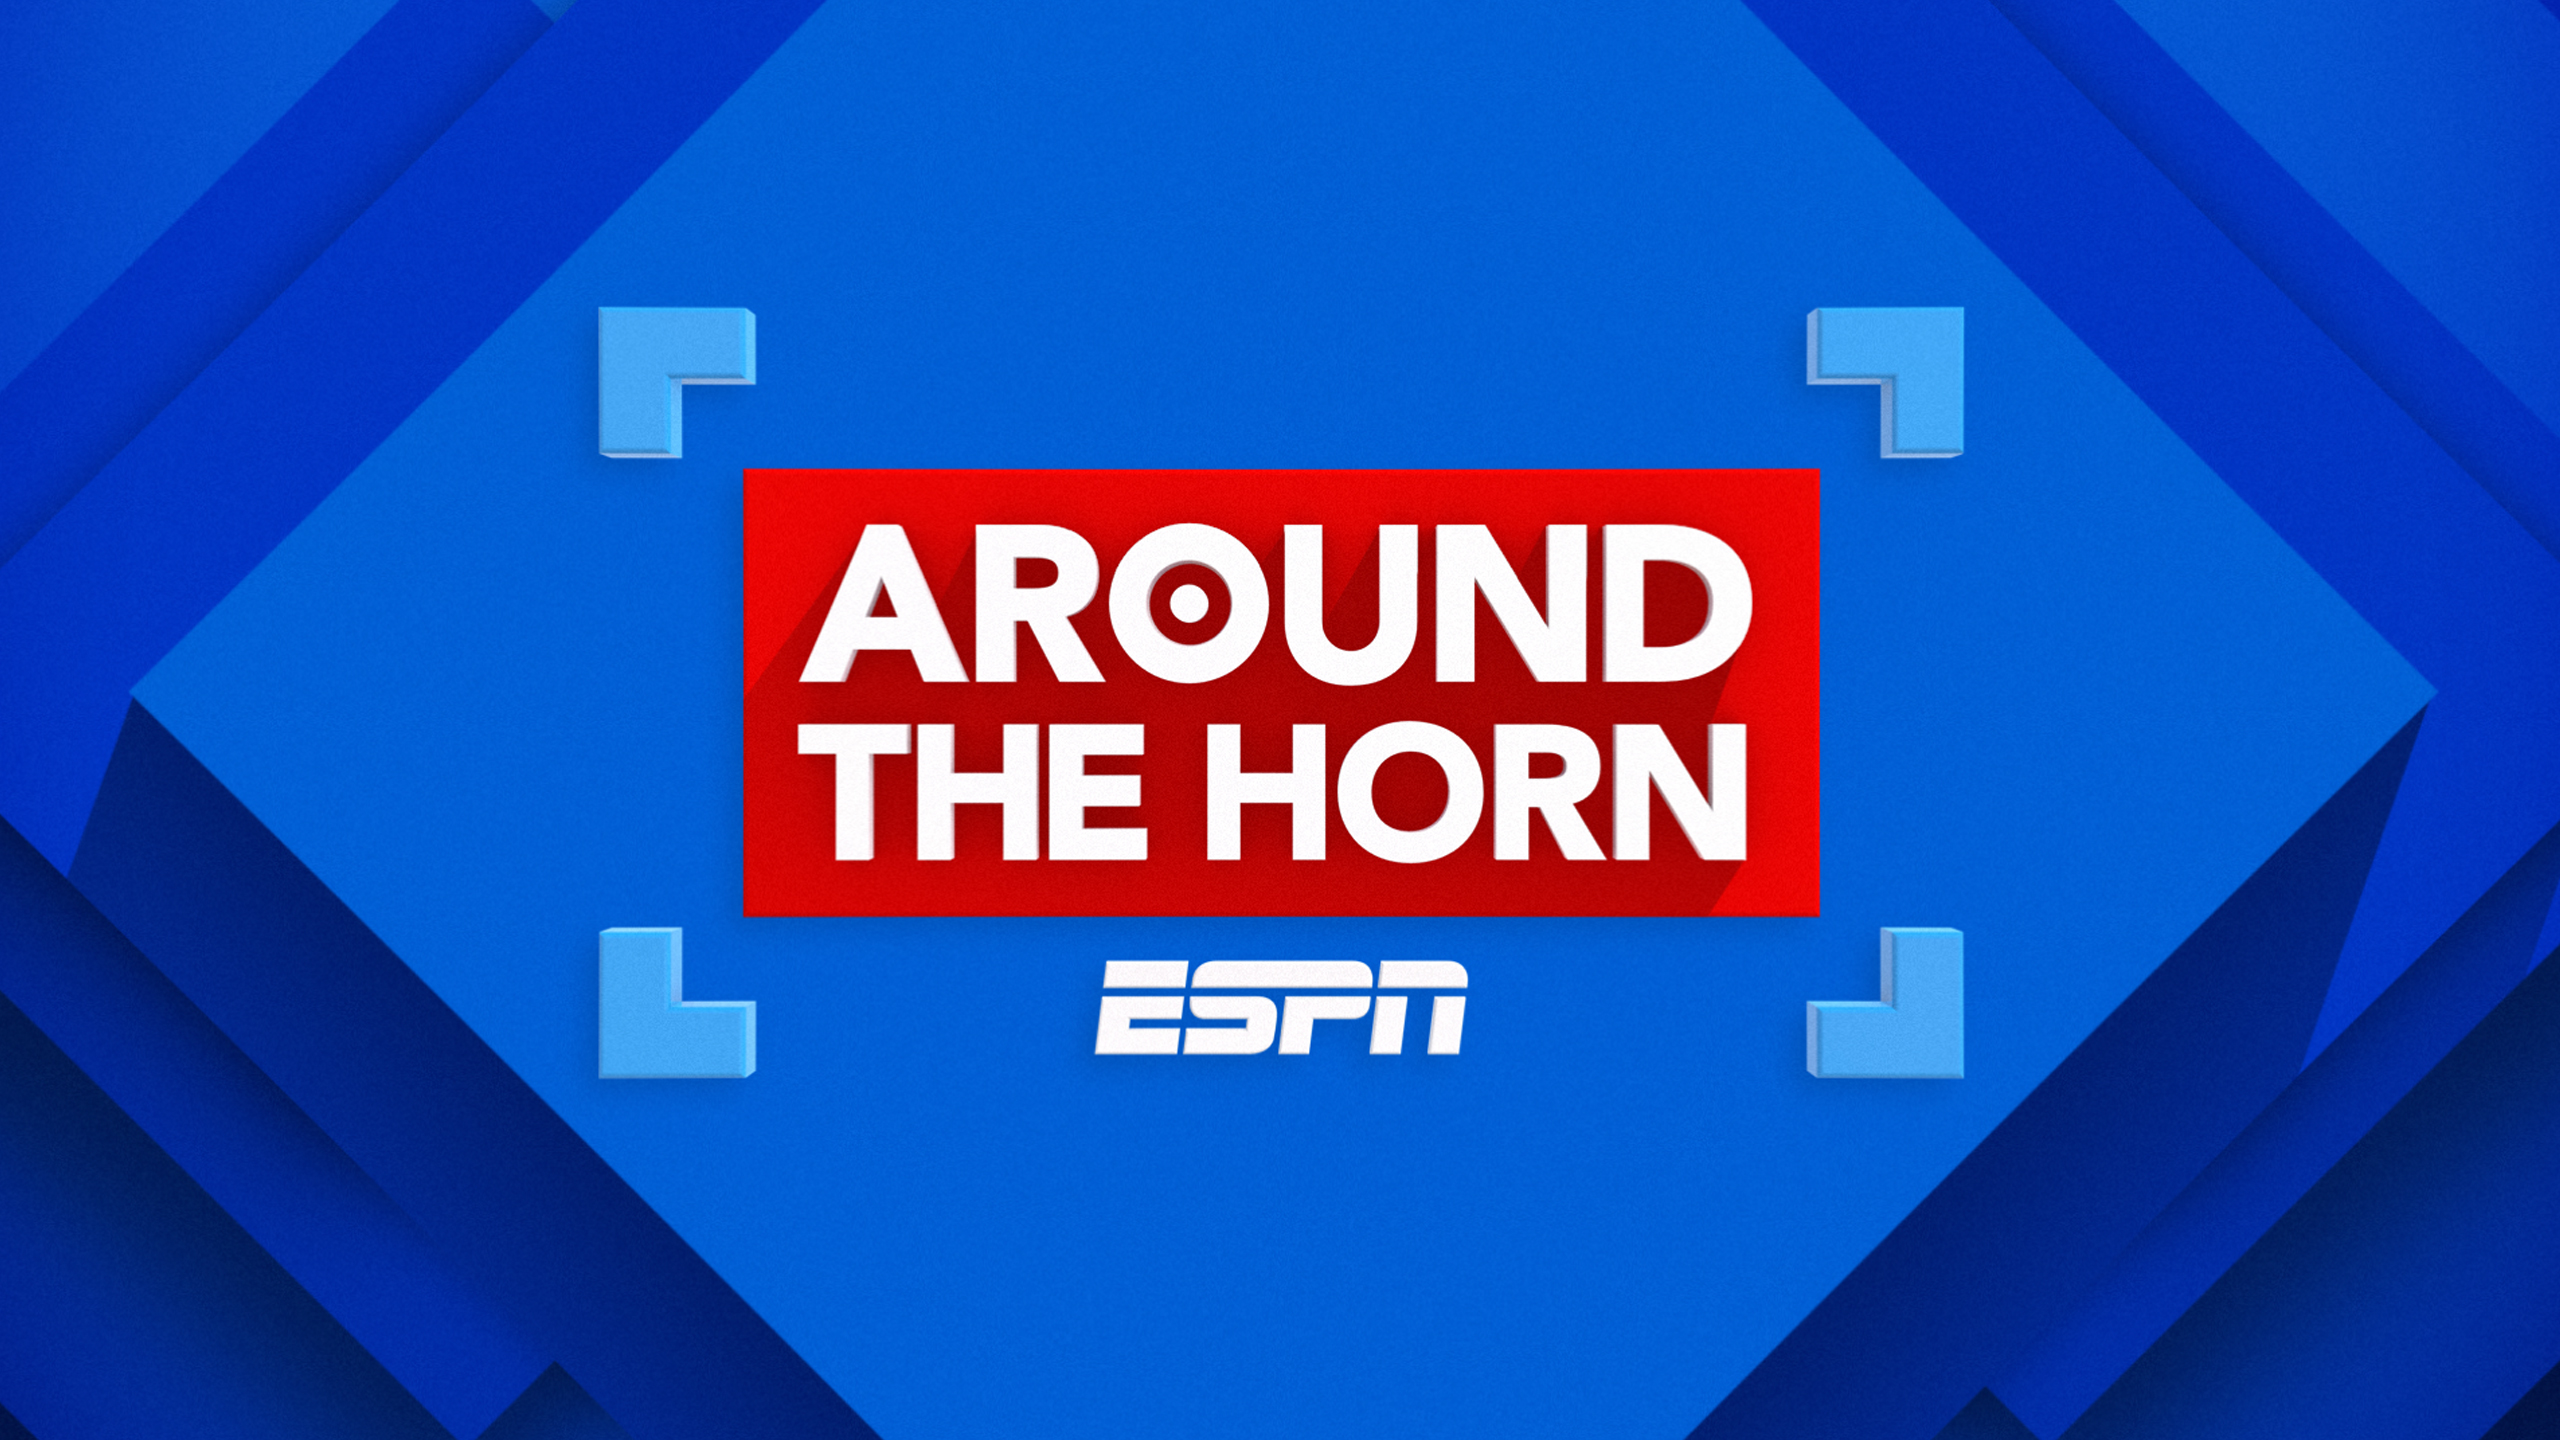 Wed, 3/20 - Around The Horn